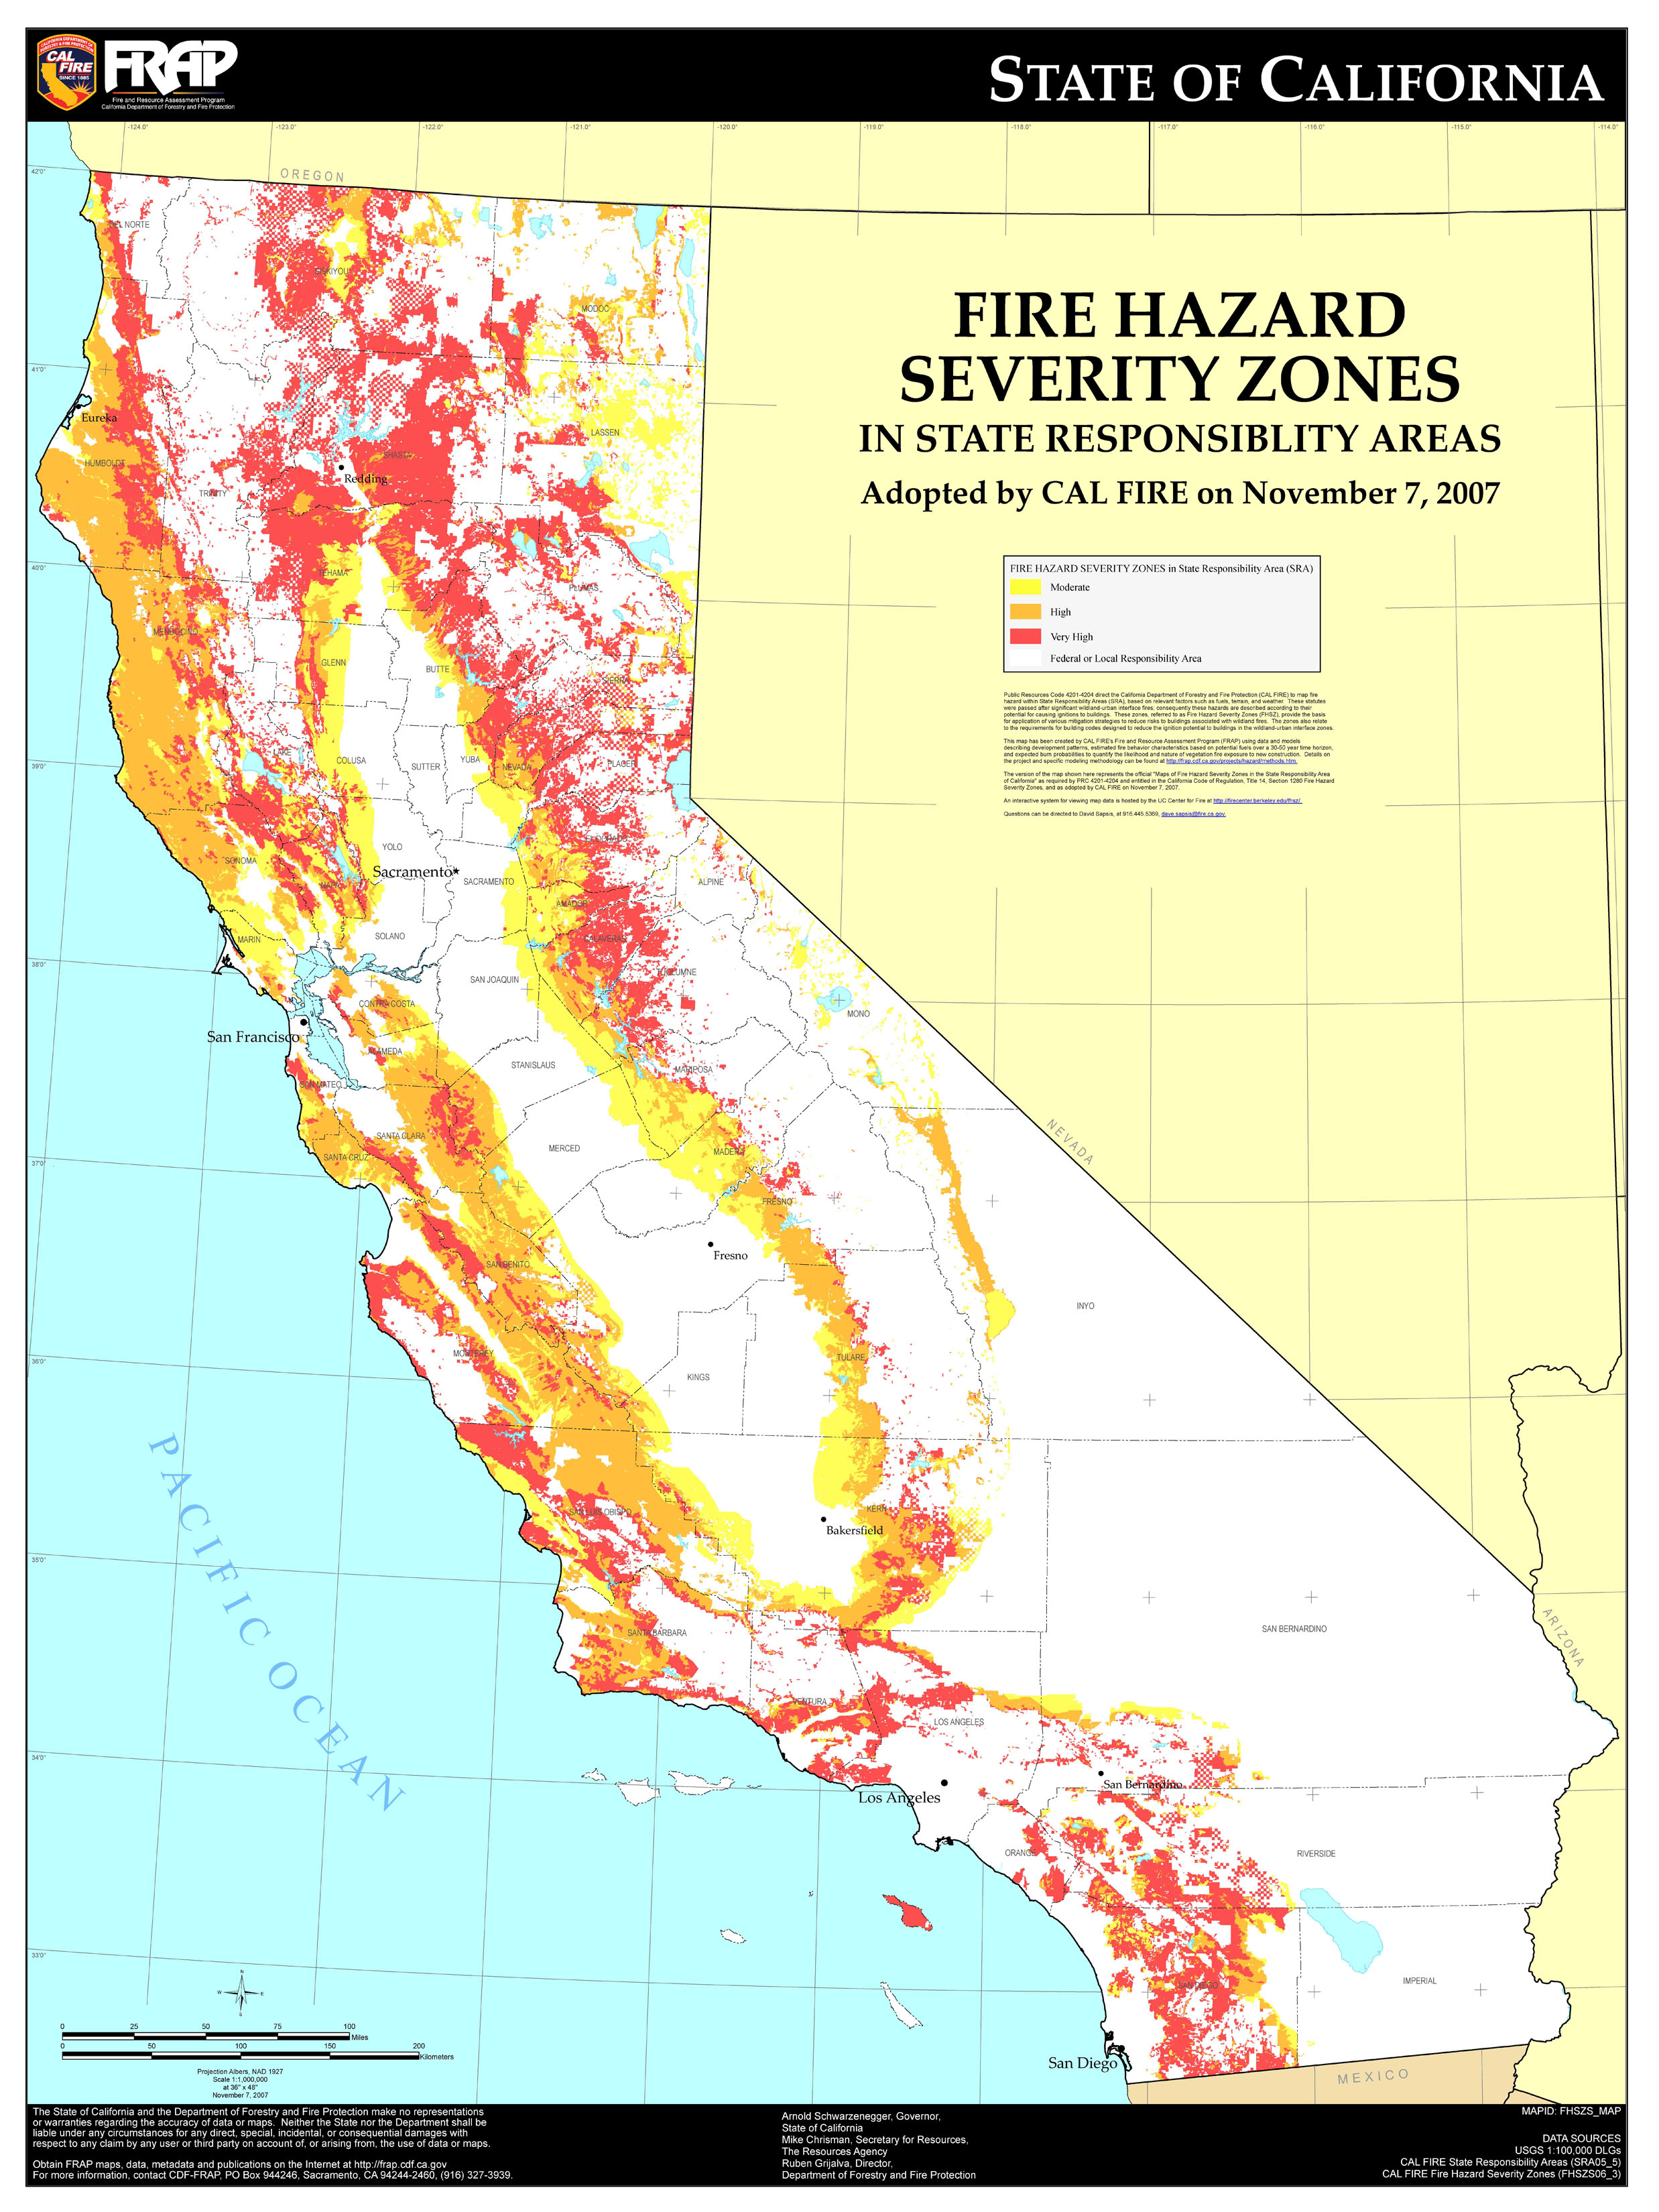 Fhszs Map California State Map Fires In California Right Now Map - Map Of California Wildfires Now